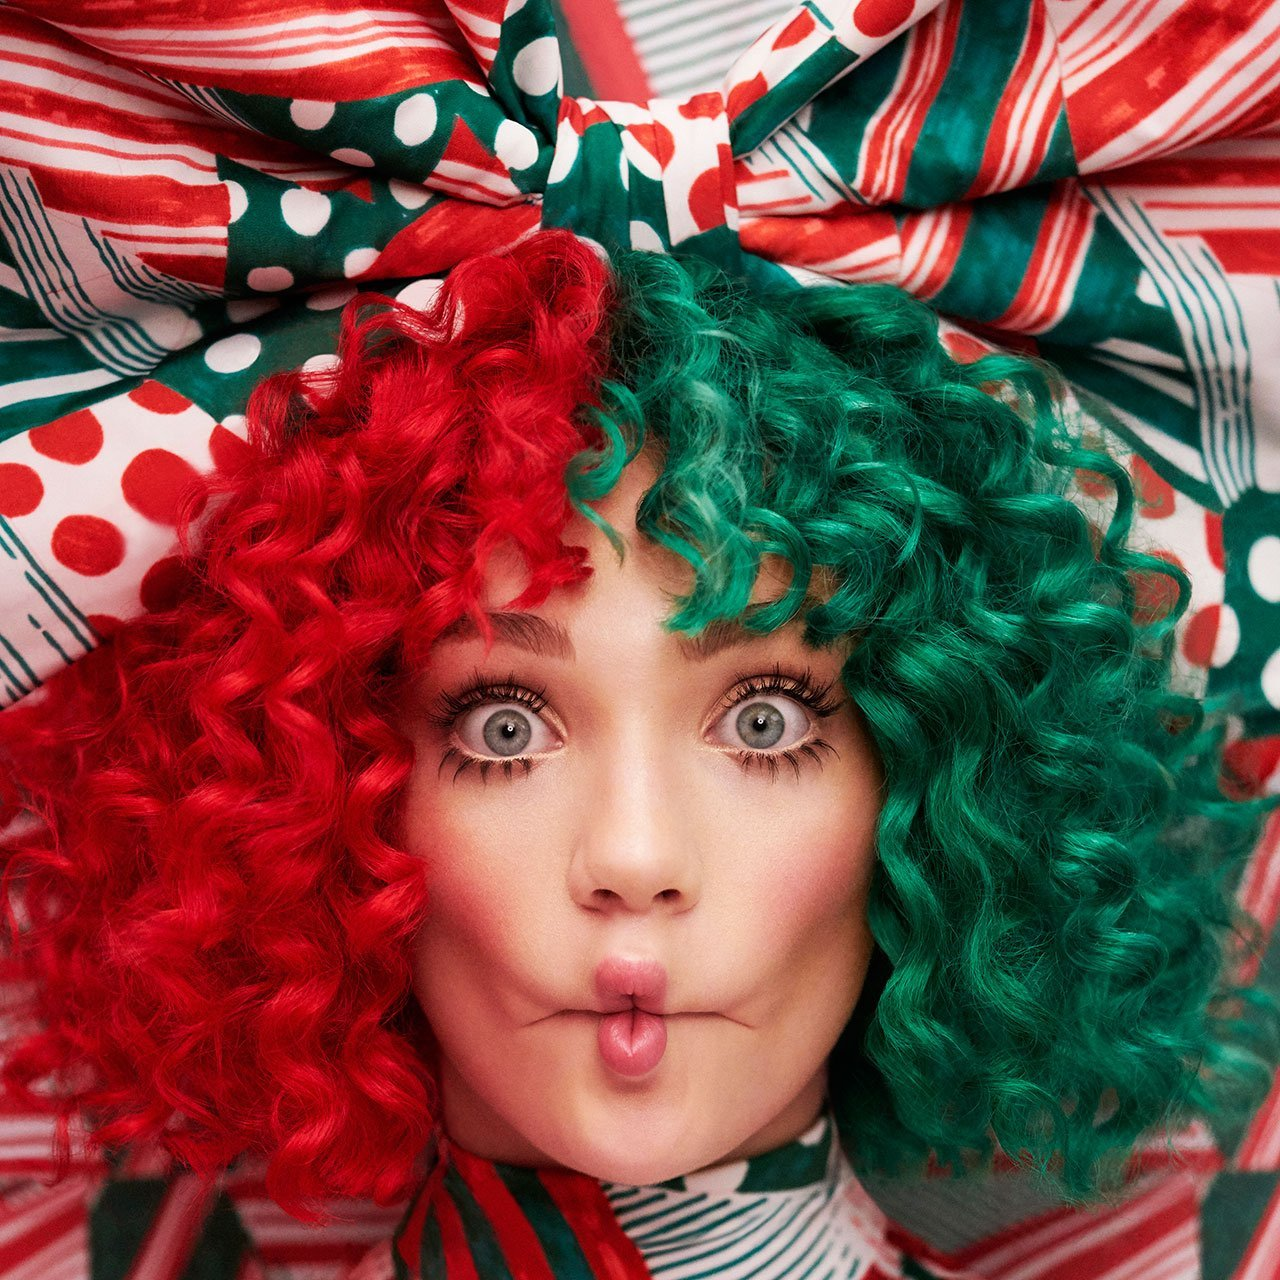 Sia To Release Everyday Is Christmas, First Holiday Album